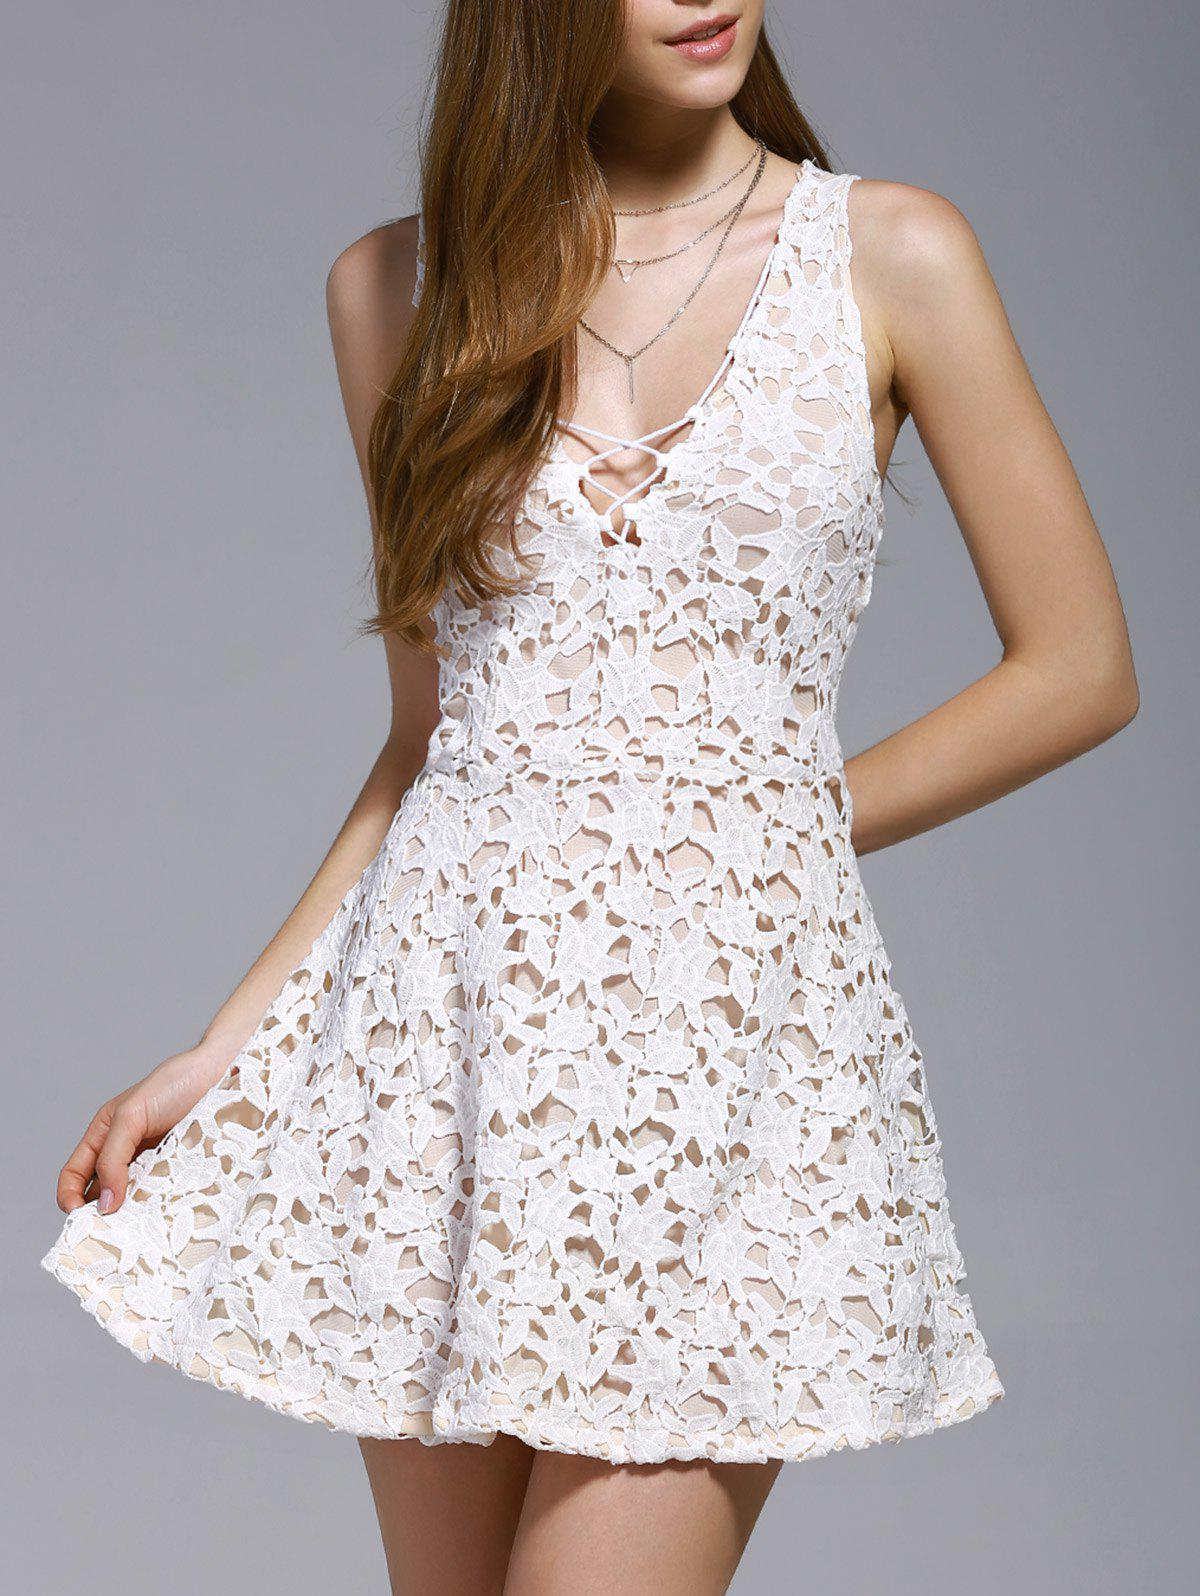 Alluring Women's Plunging Neck Sleeveless Cut Out Lace Dress - WHITE XL